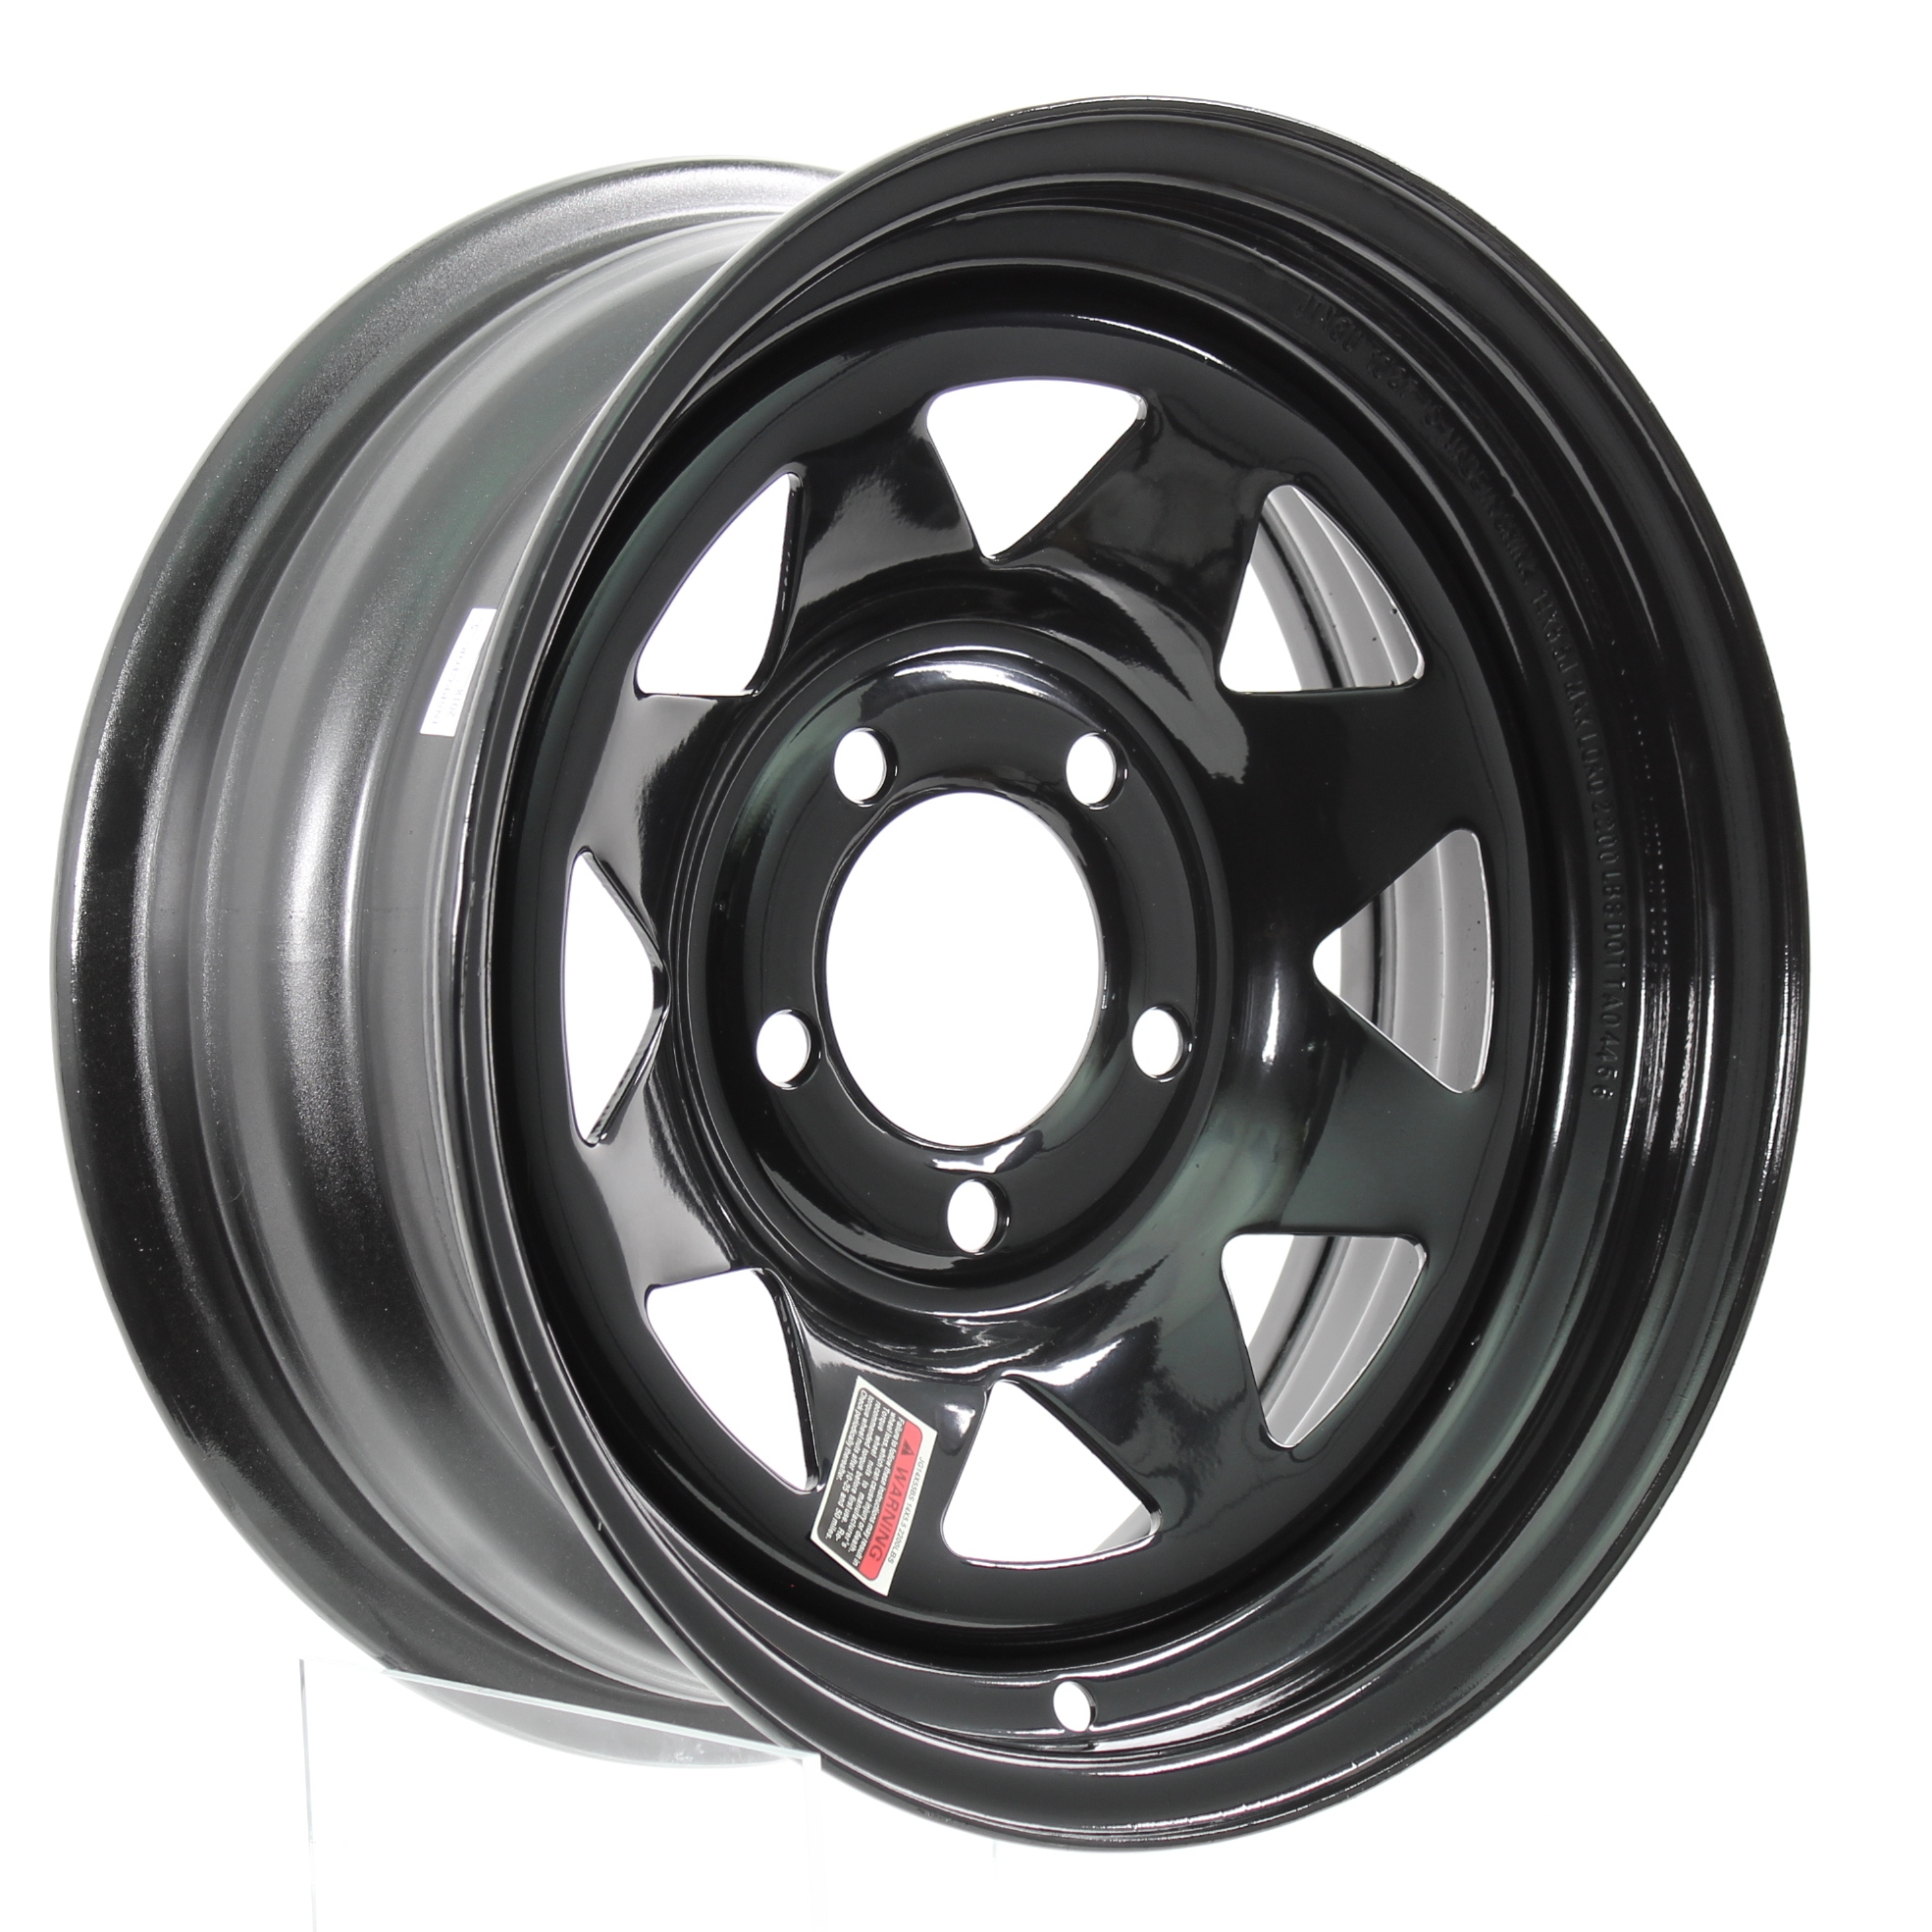 14x5.5 5-4.5 Black Spoke Steel Trailer Wheel Image